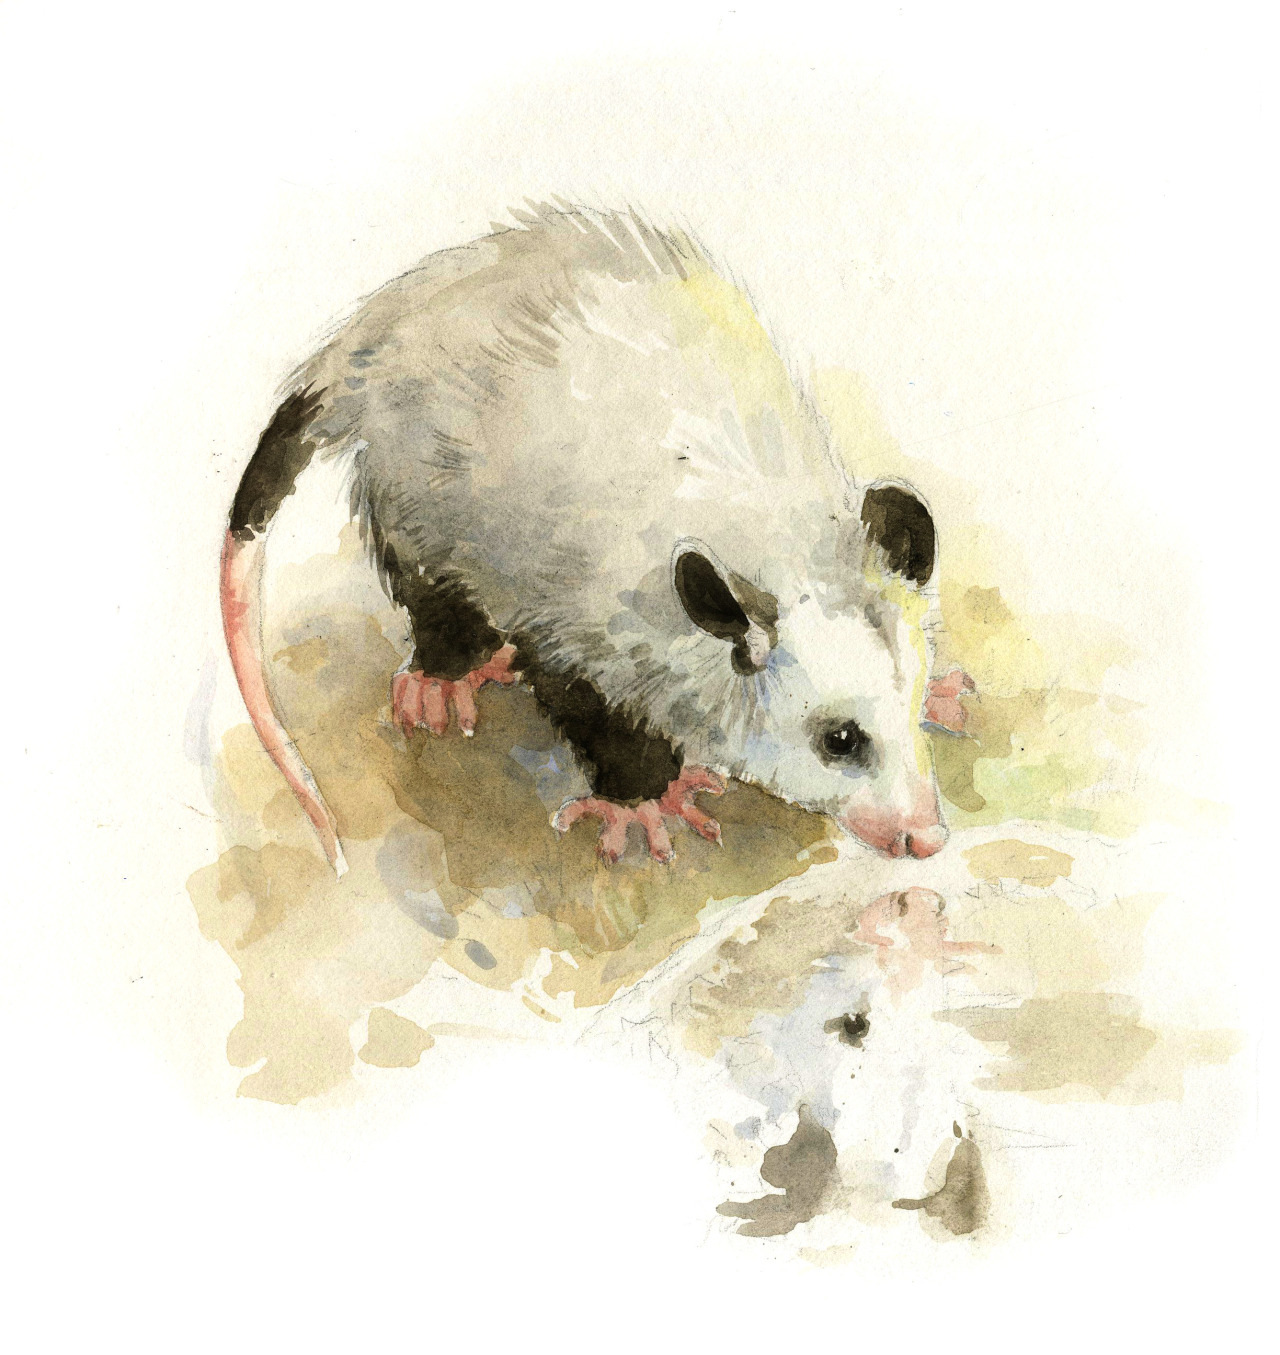 First illustration for my children's book about an opossum who doesn't want to be an opossum anymore.